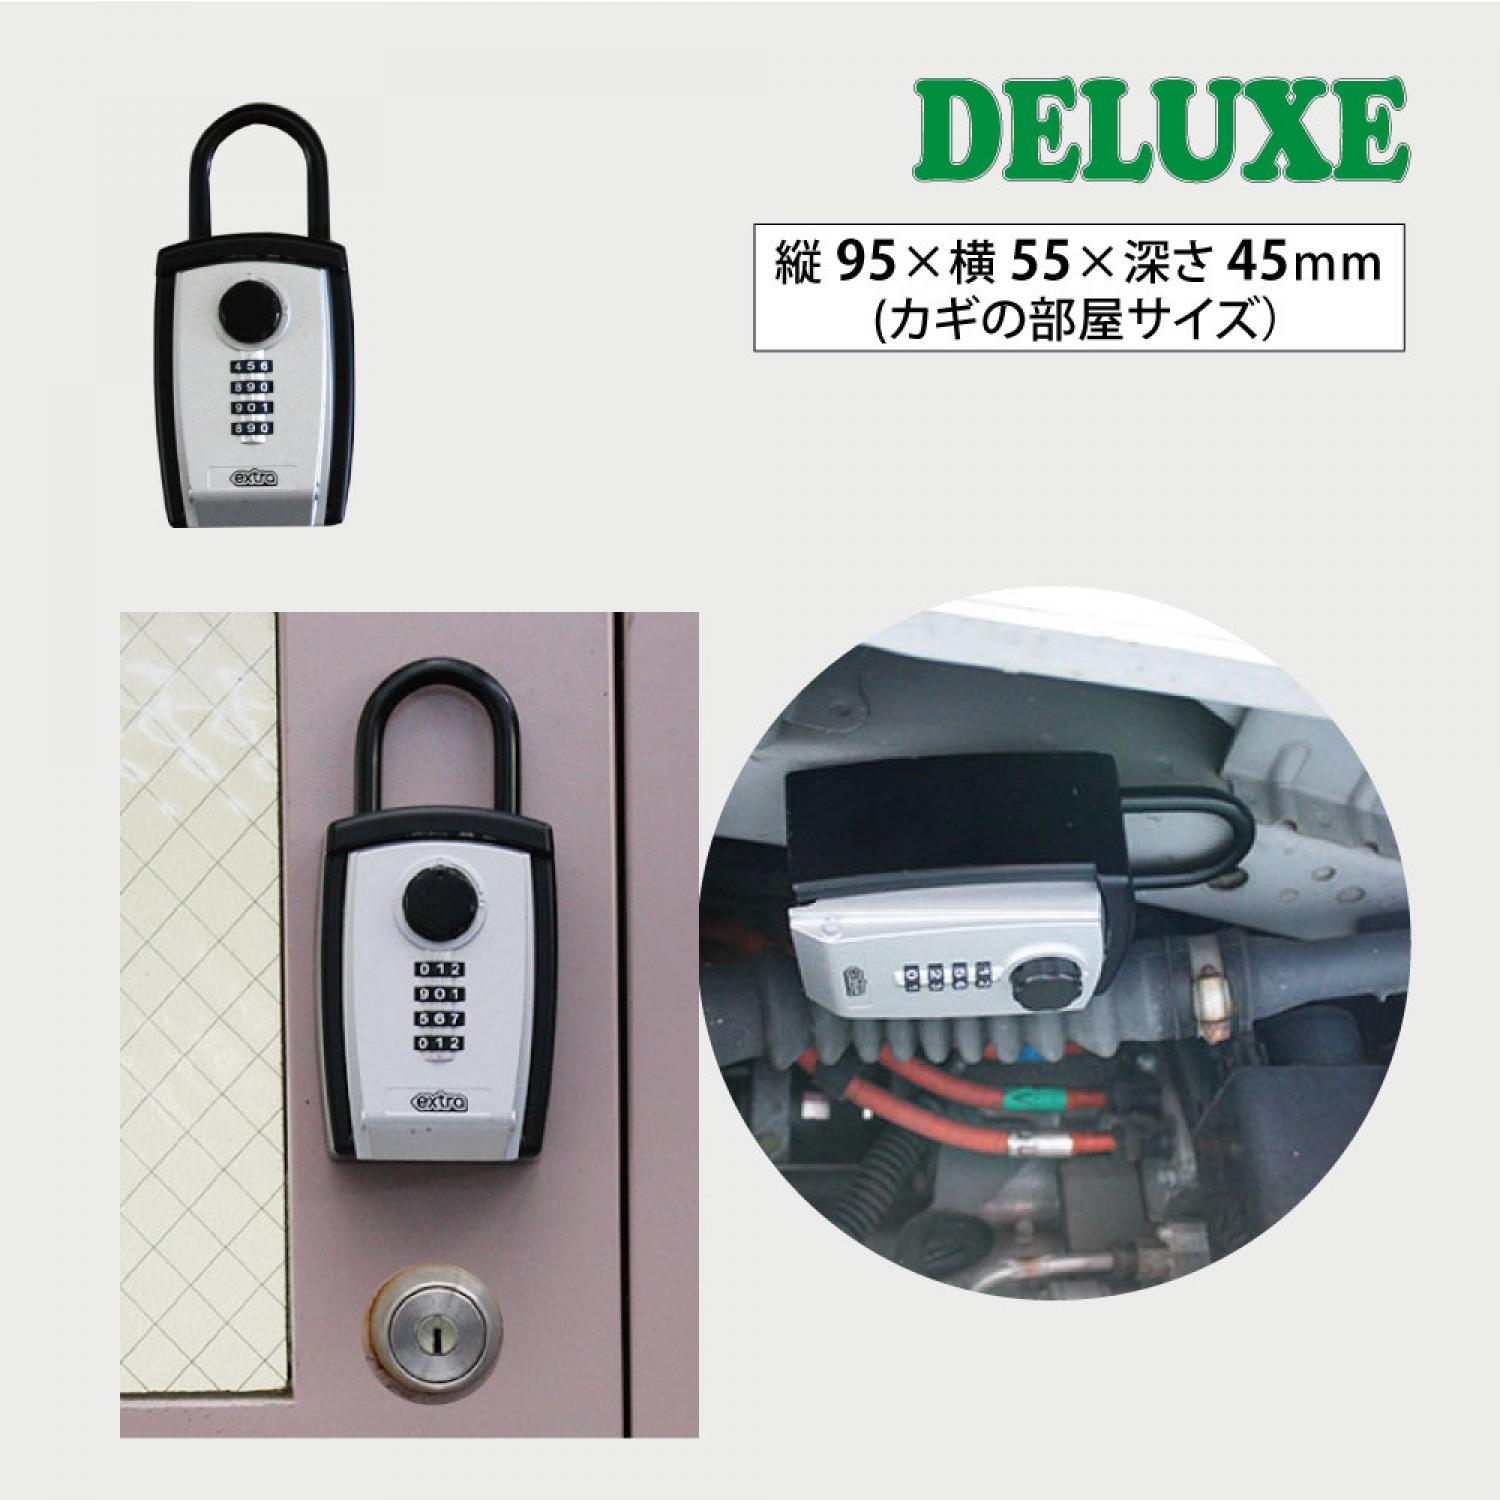 EXTRA Surfers Security Car Key Box Delux